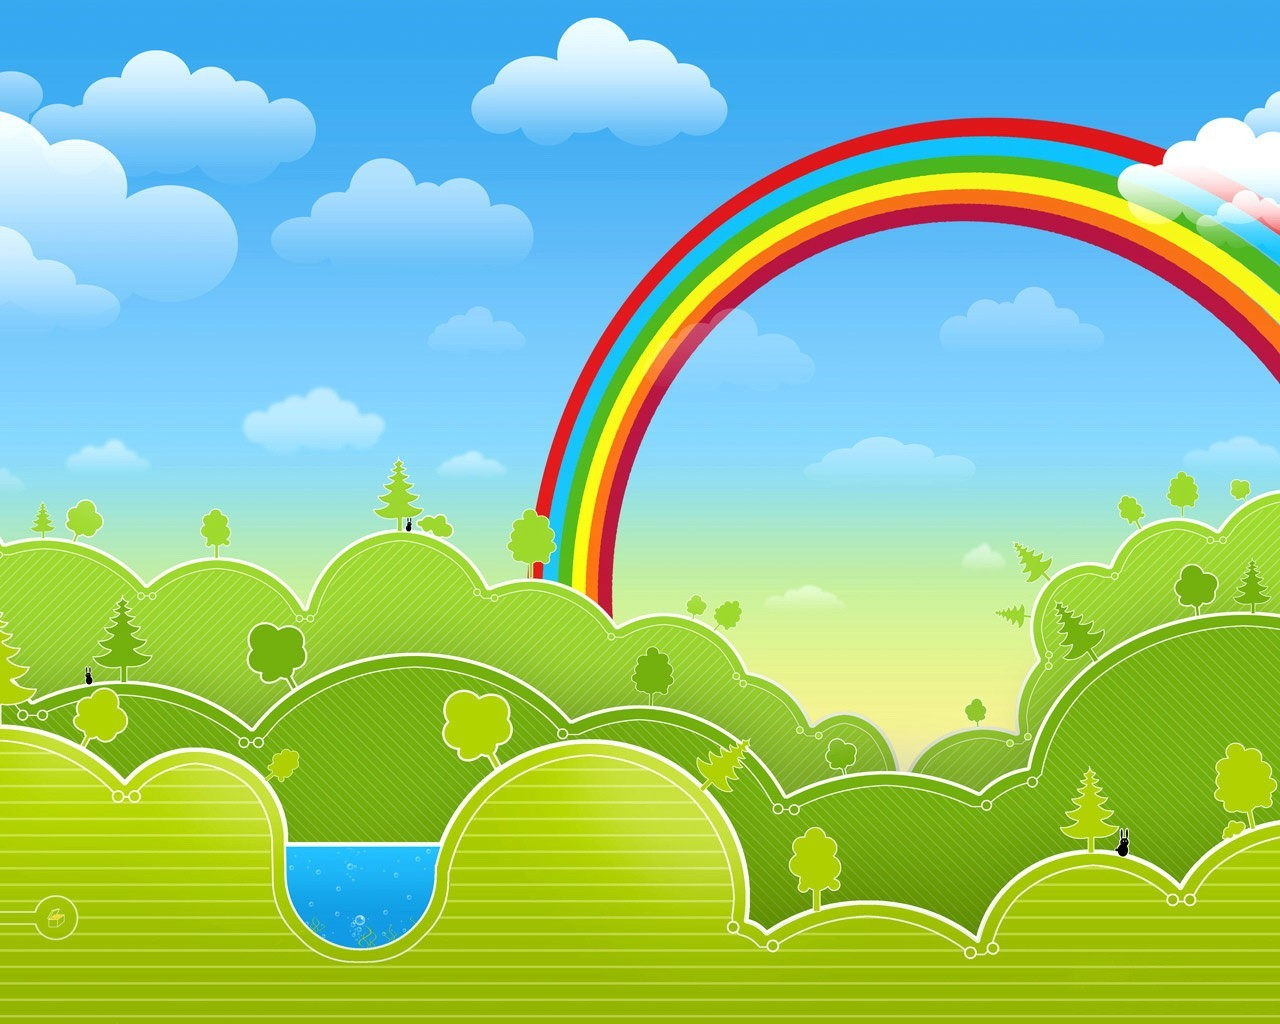 Drawn Vector Rainbow - Drawn Vector Rainbow